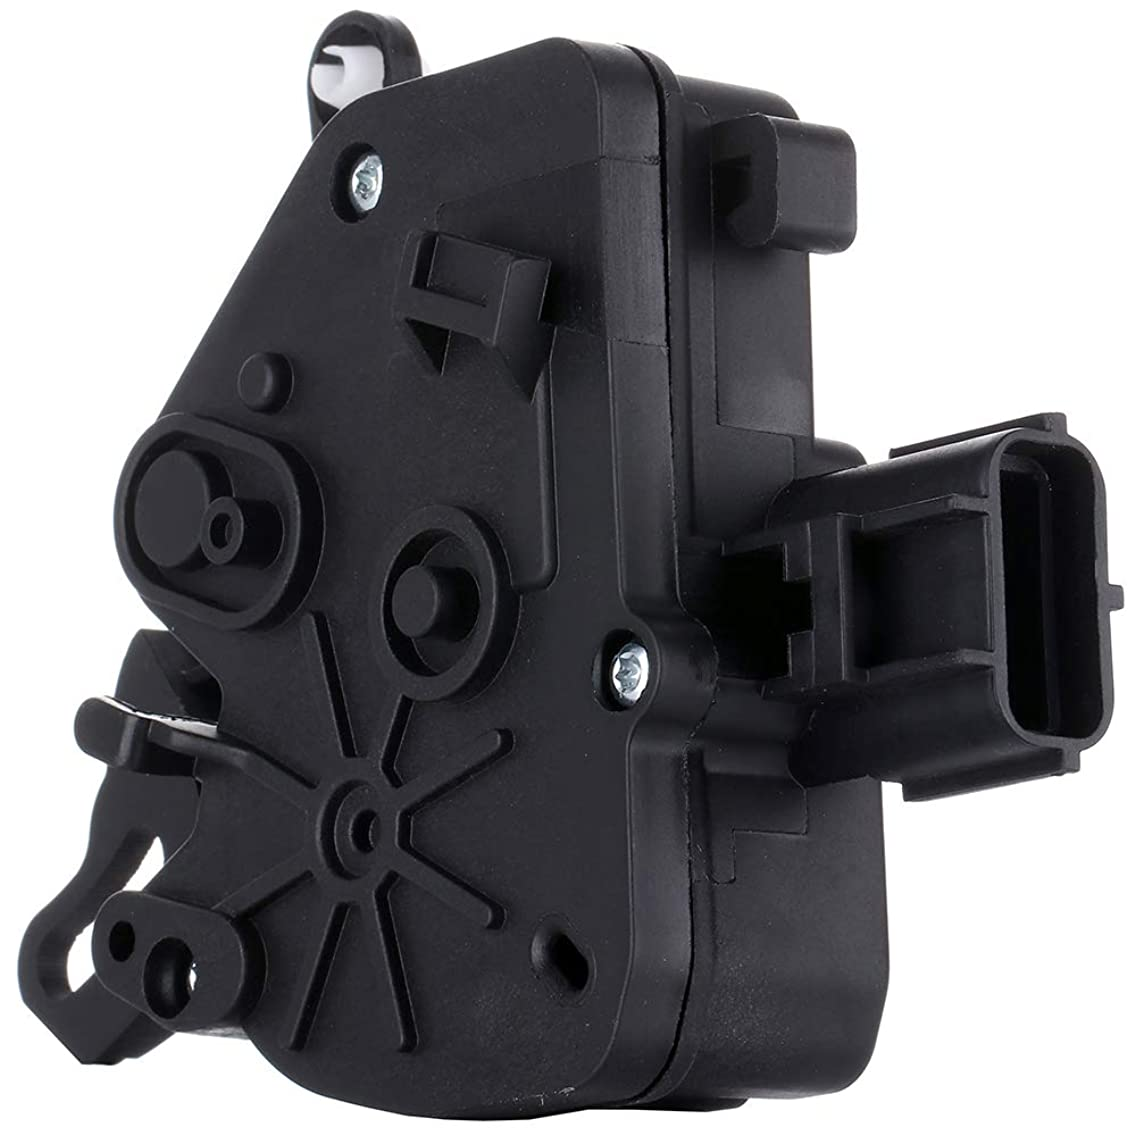 ECCPP Fits for 2001 2002 2003 2004 2005 2006 2007 Dodge Grand Caravan Dodge Caravan Chrysler Voyager Chrysler Town Country Rear Right/Left Door Lock Latch and Actuator 4717960AC 4717961AB